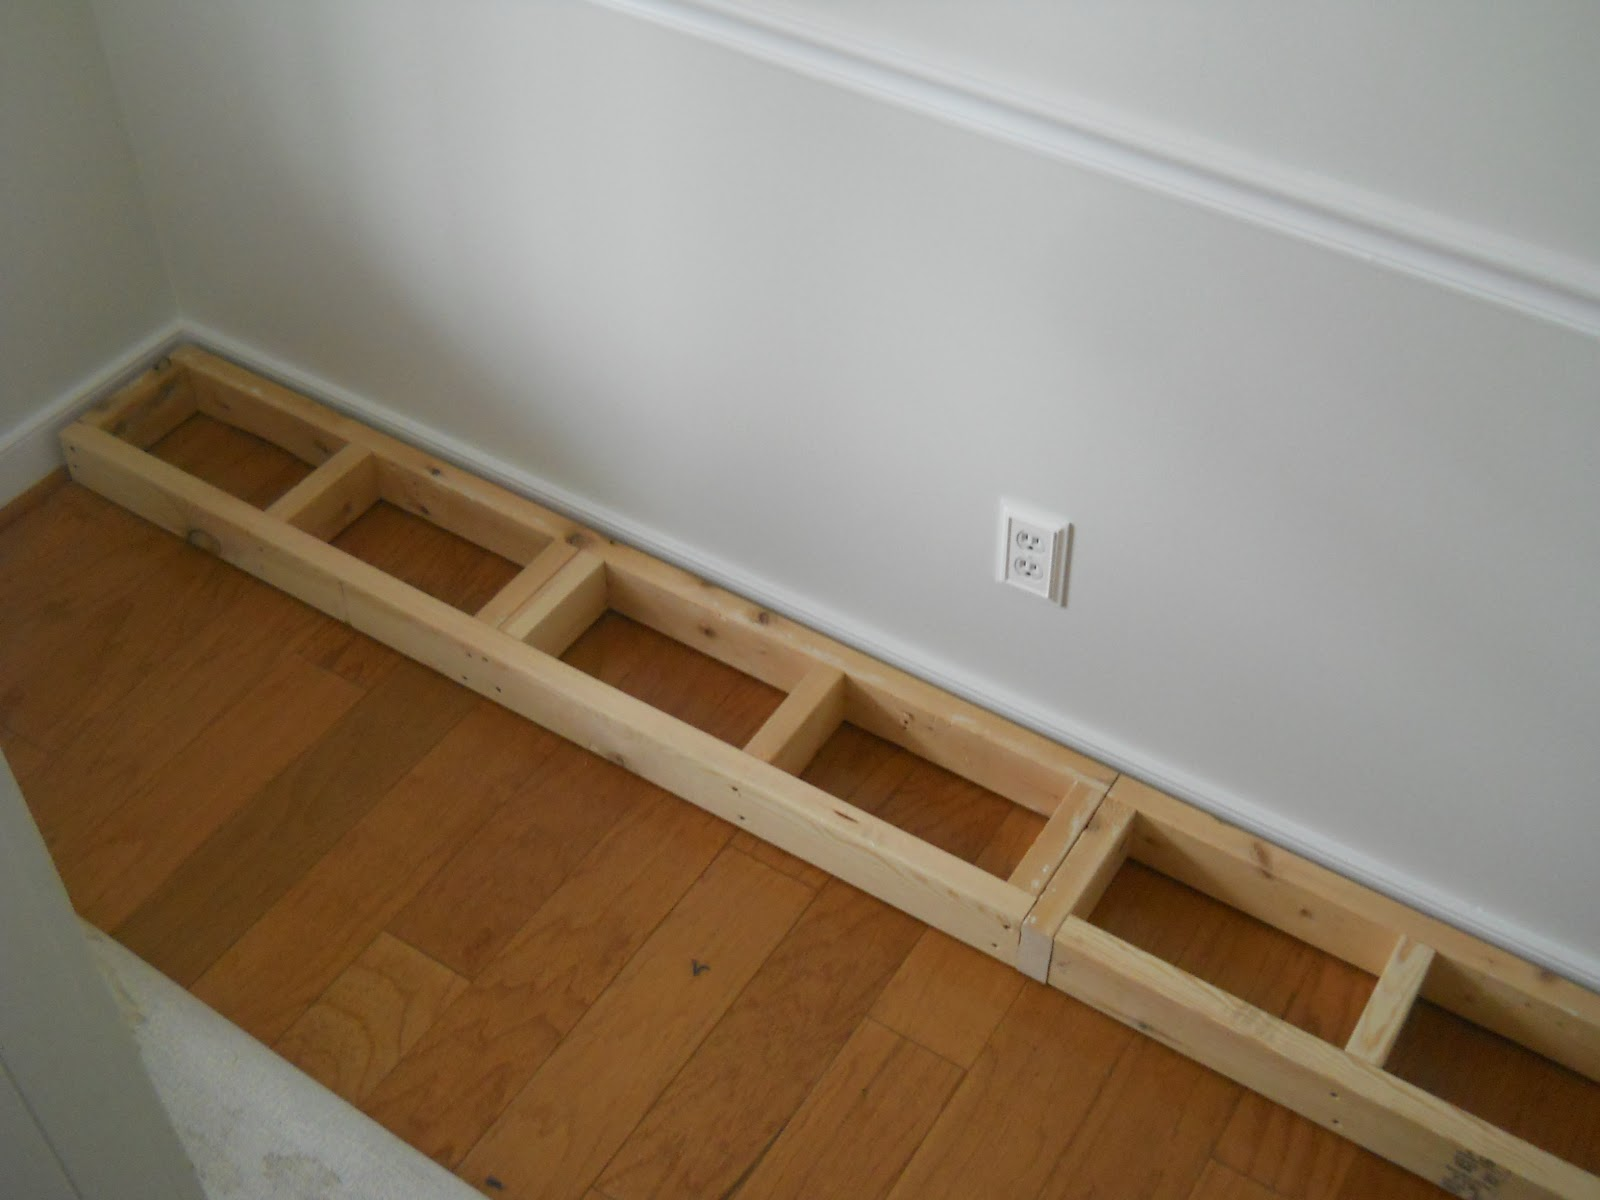 Chair Rail Shelving Part - 45: I Put Spacers Between The Outside Walls Of The Shelves And The Walls Of The  Room, Compensating For The Chair Rails. The Outside Box Of The Shelves Only  Goes ...